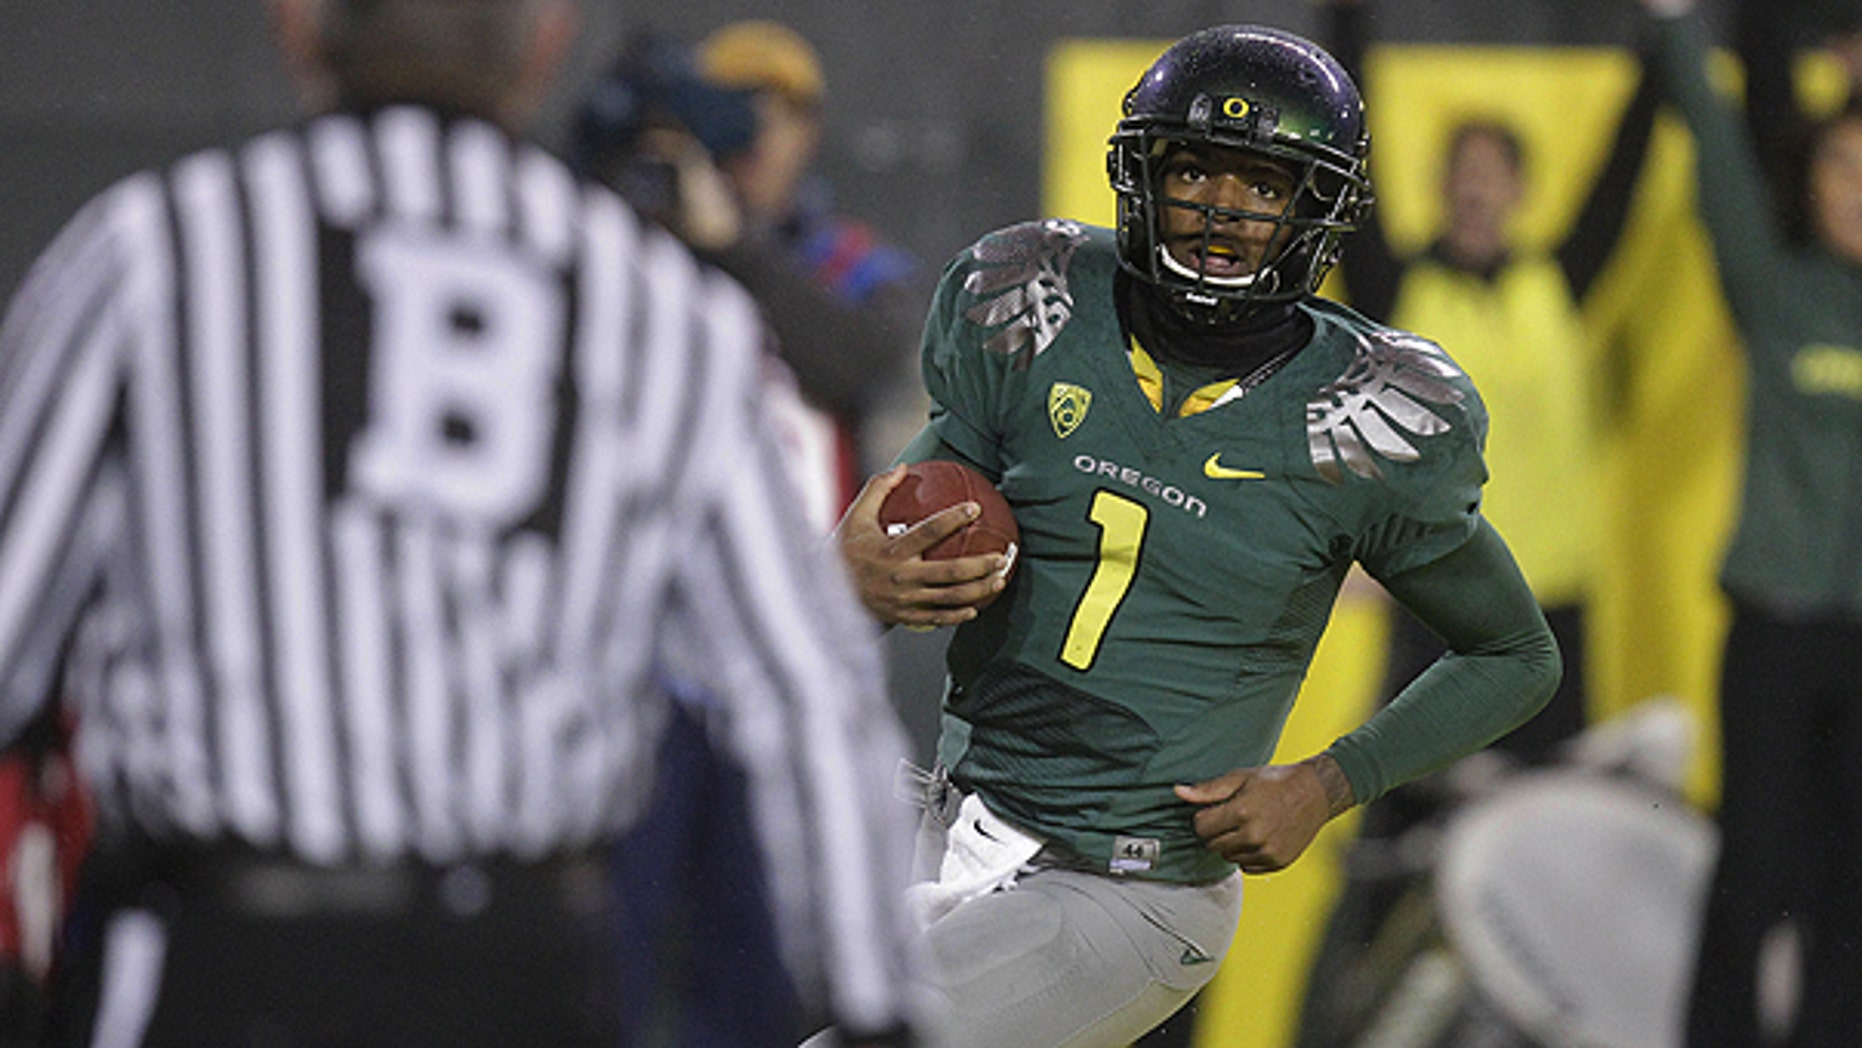 nov. 26: Oregon quarterback Darron Thomas (1) looks up after scoring a touch down in the third quarter during an NCAA college football game against Arizona in Eugene, Ore.